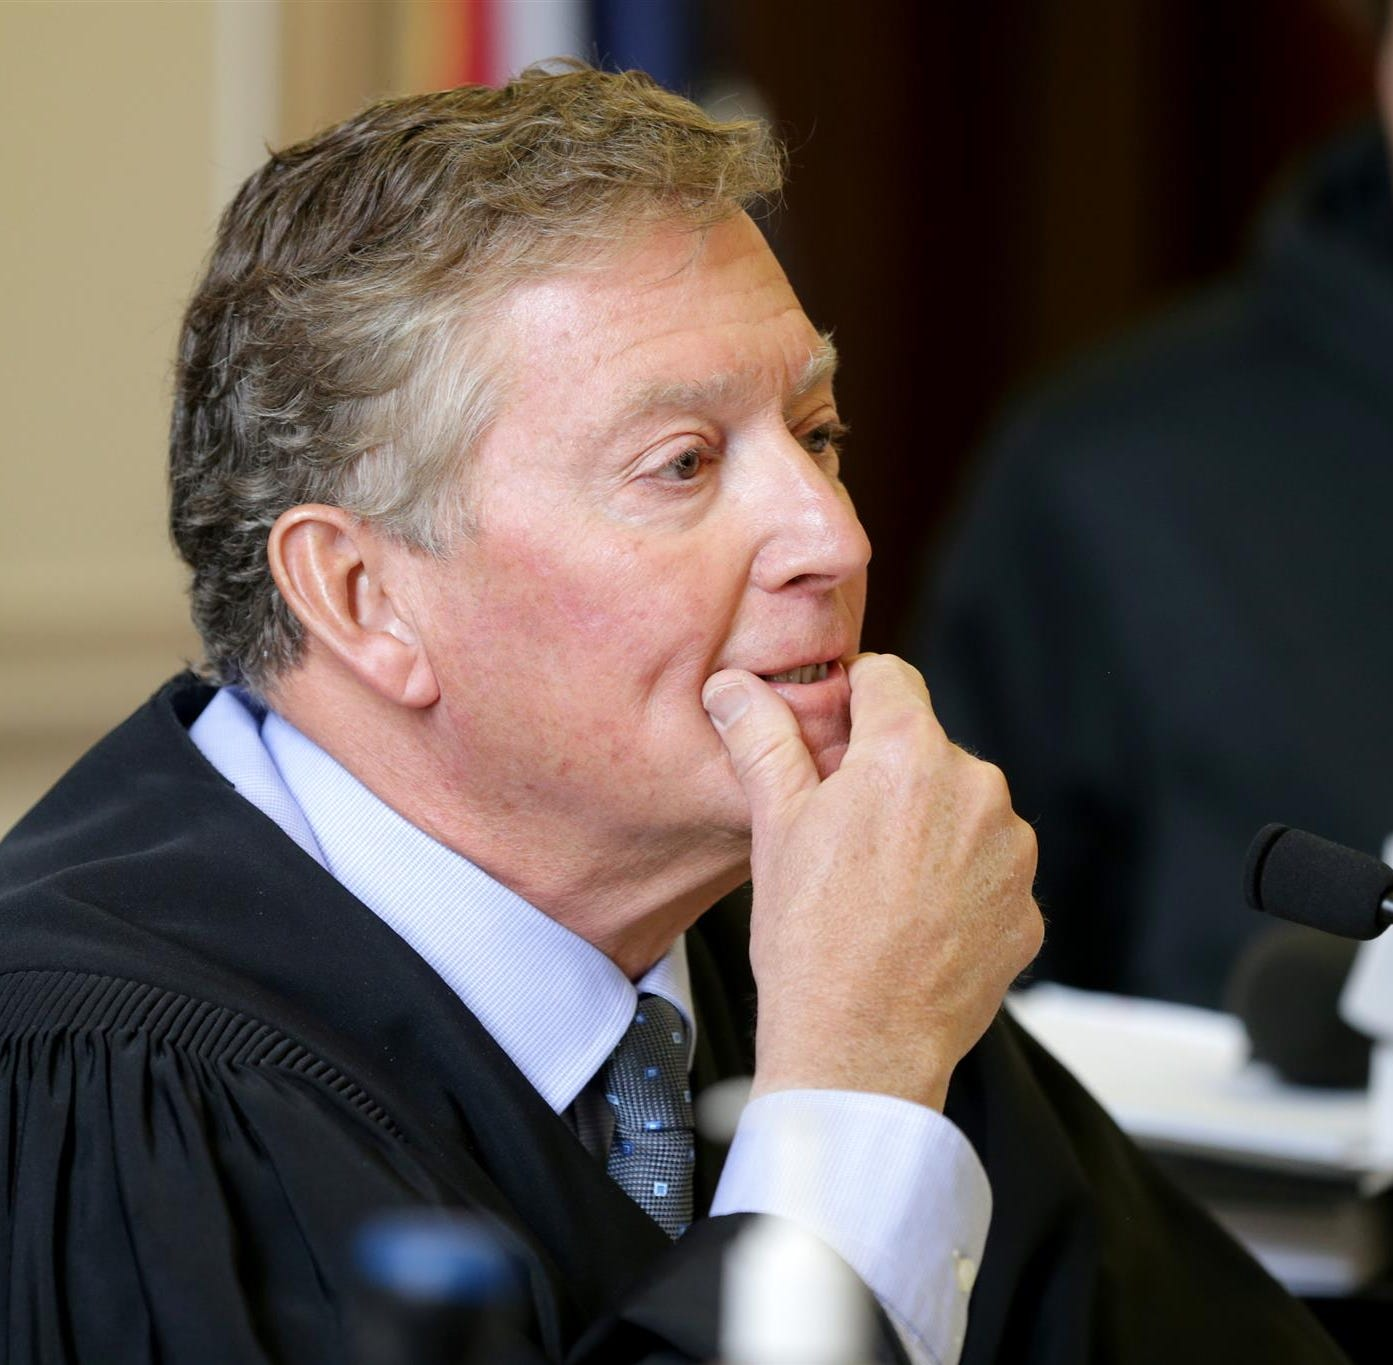 Judge tells City Council's 'Gang of Five' they should apologize and resign over secret texts